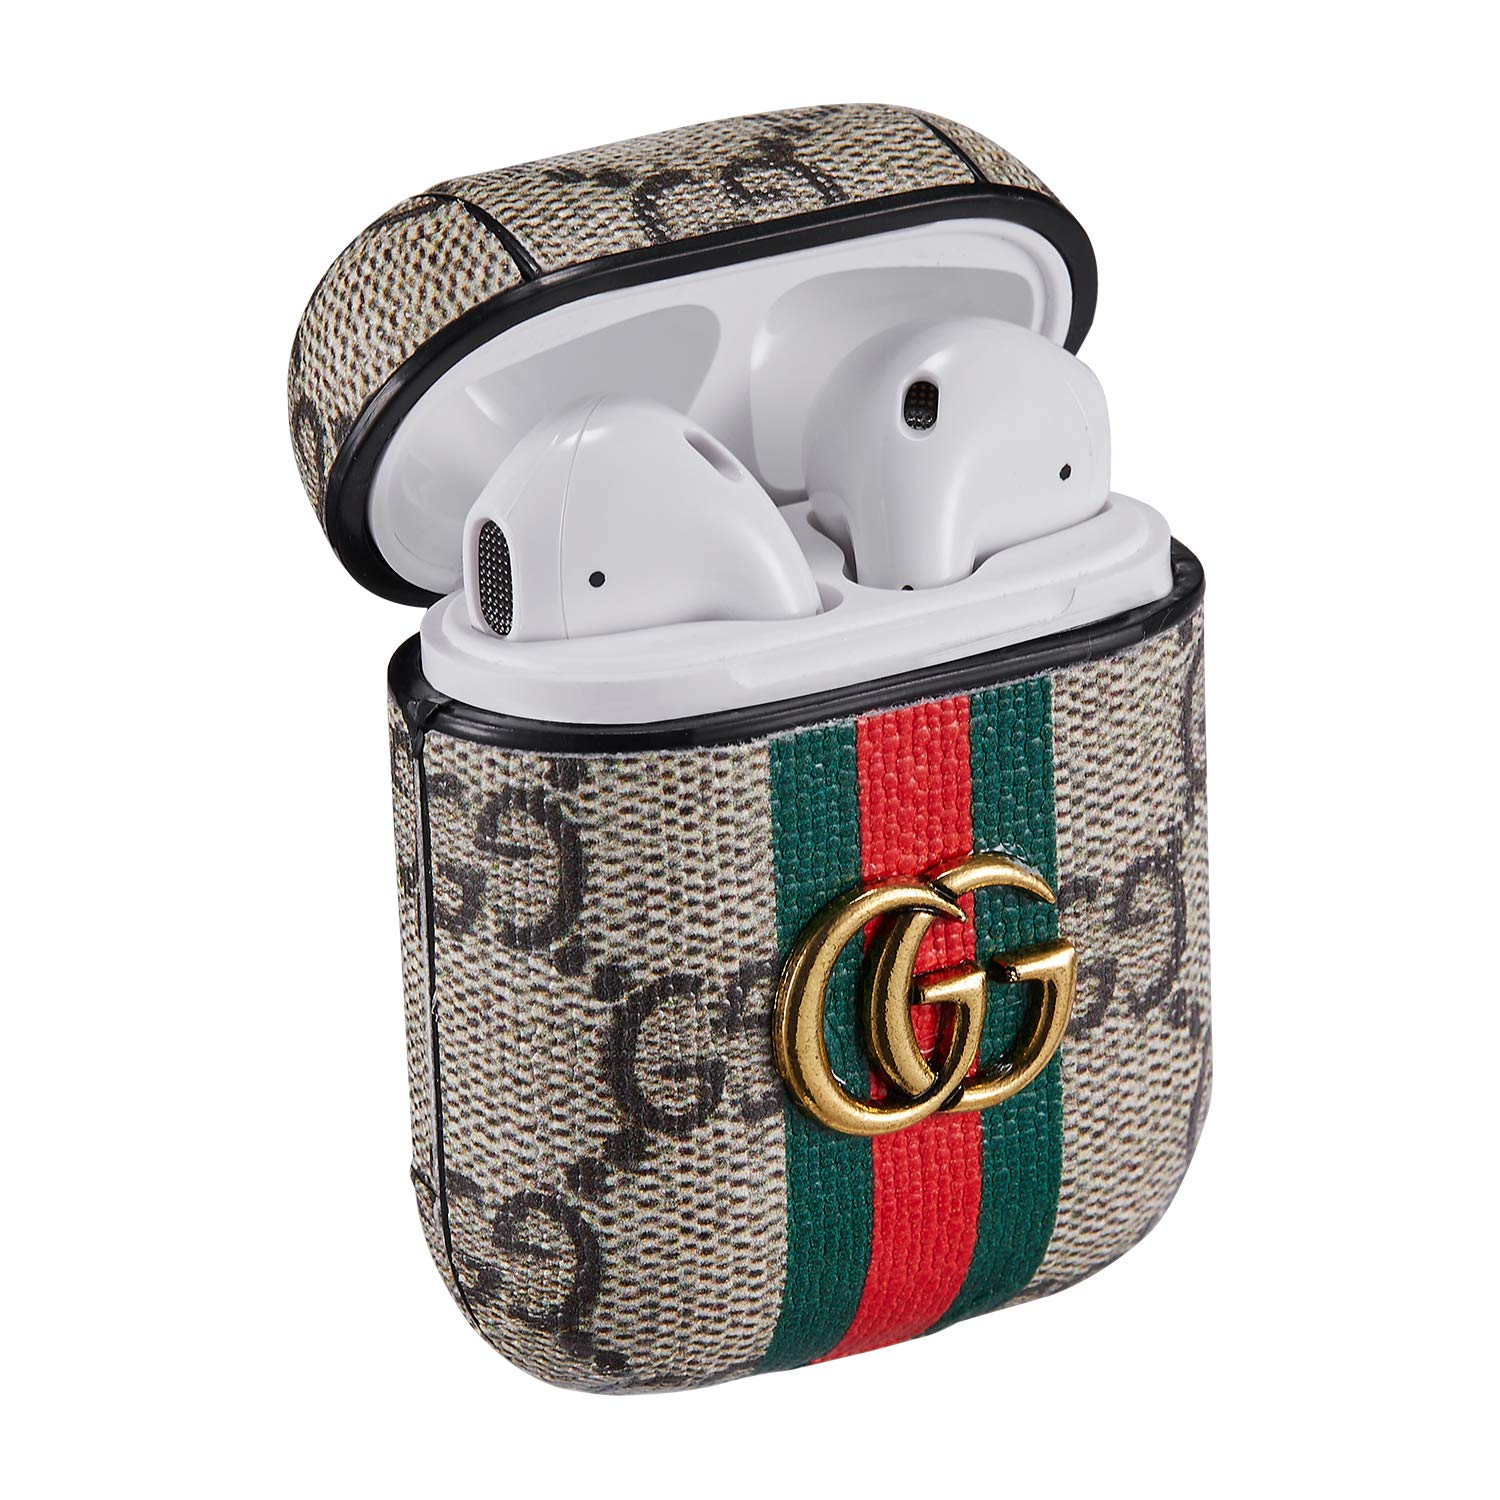 Influence of Fashion for AIRPODS Leather Case,Luxury Cover for Airpod 1//2,Wireless Headphone Designer Cool Keychain Protective Shockproof Luxurious Cases Ring for Girls Man Woman Air pods Classic GG